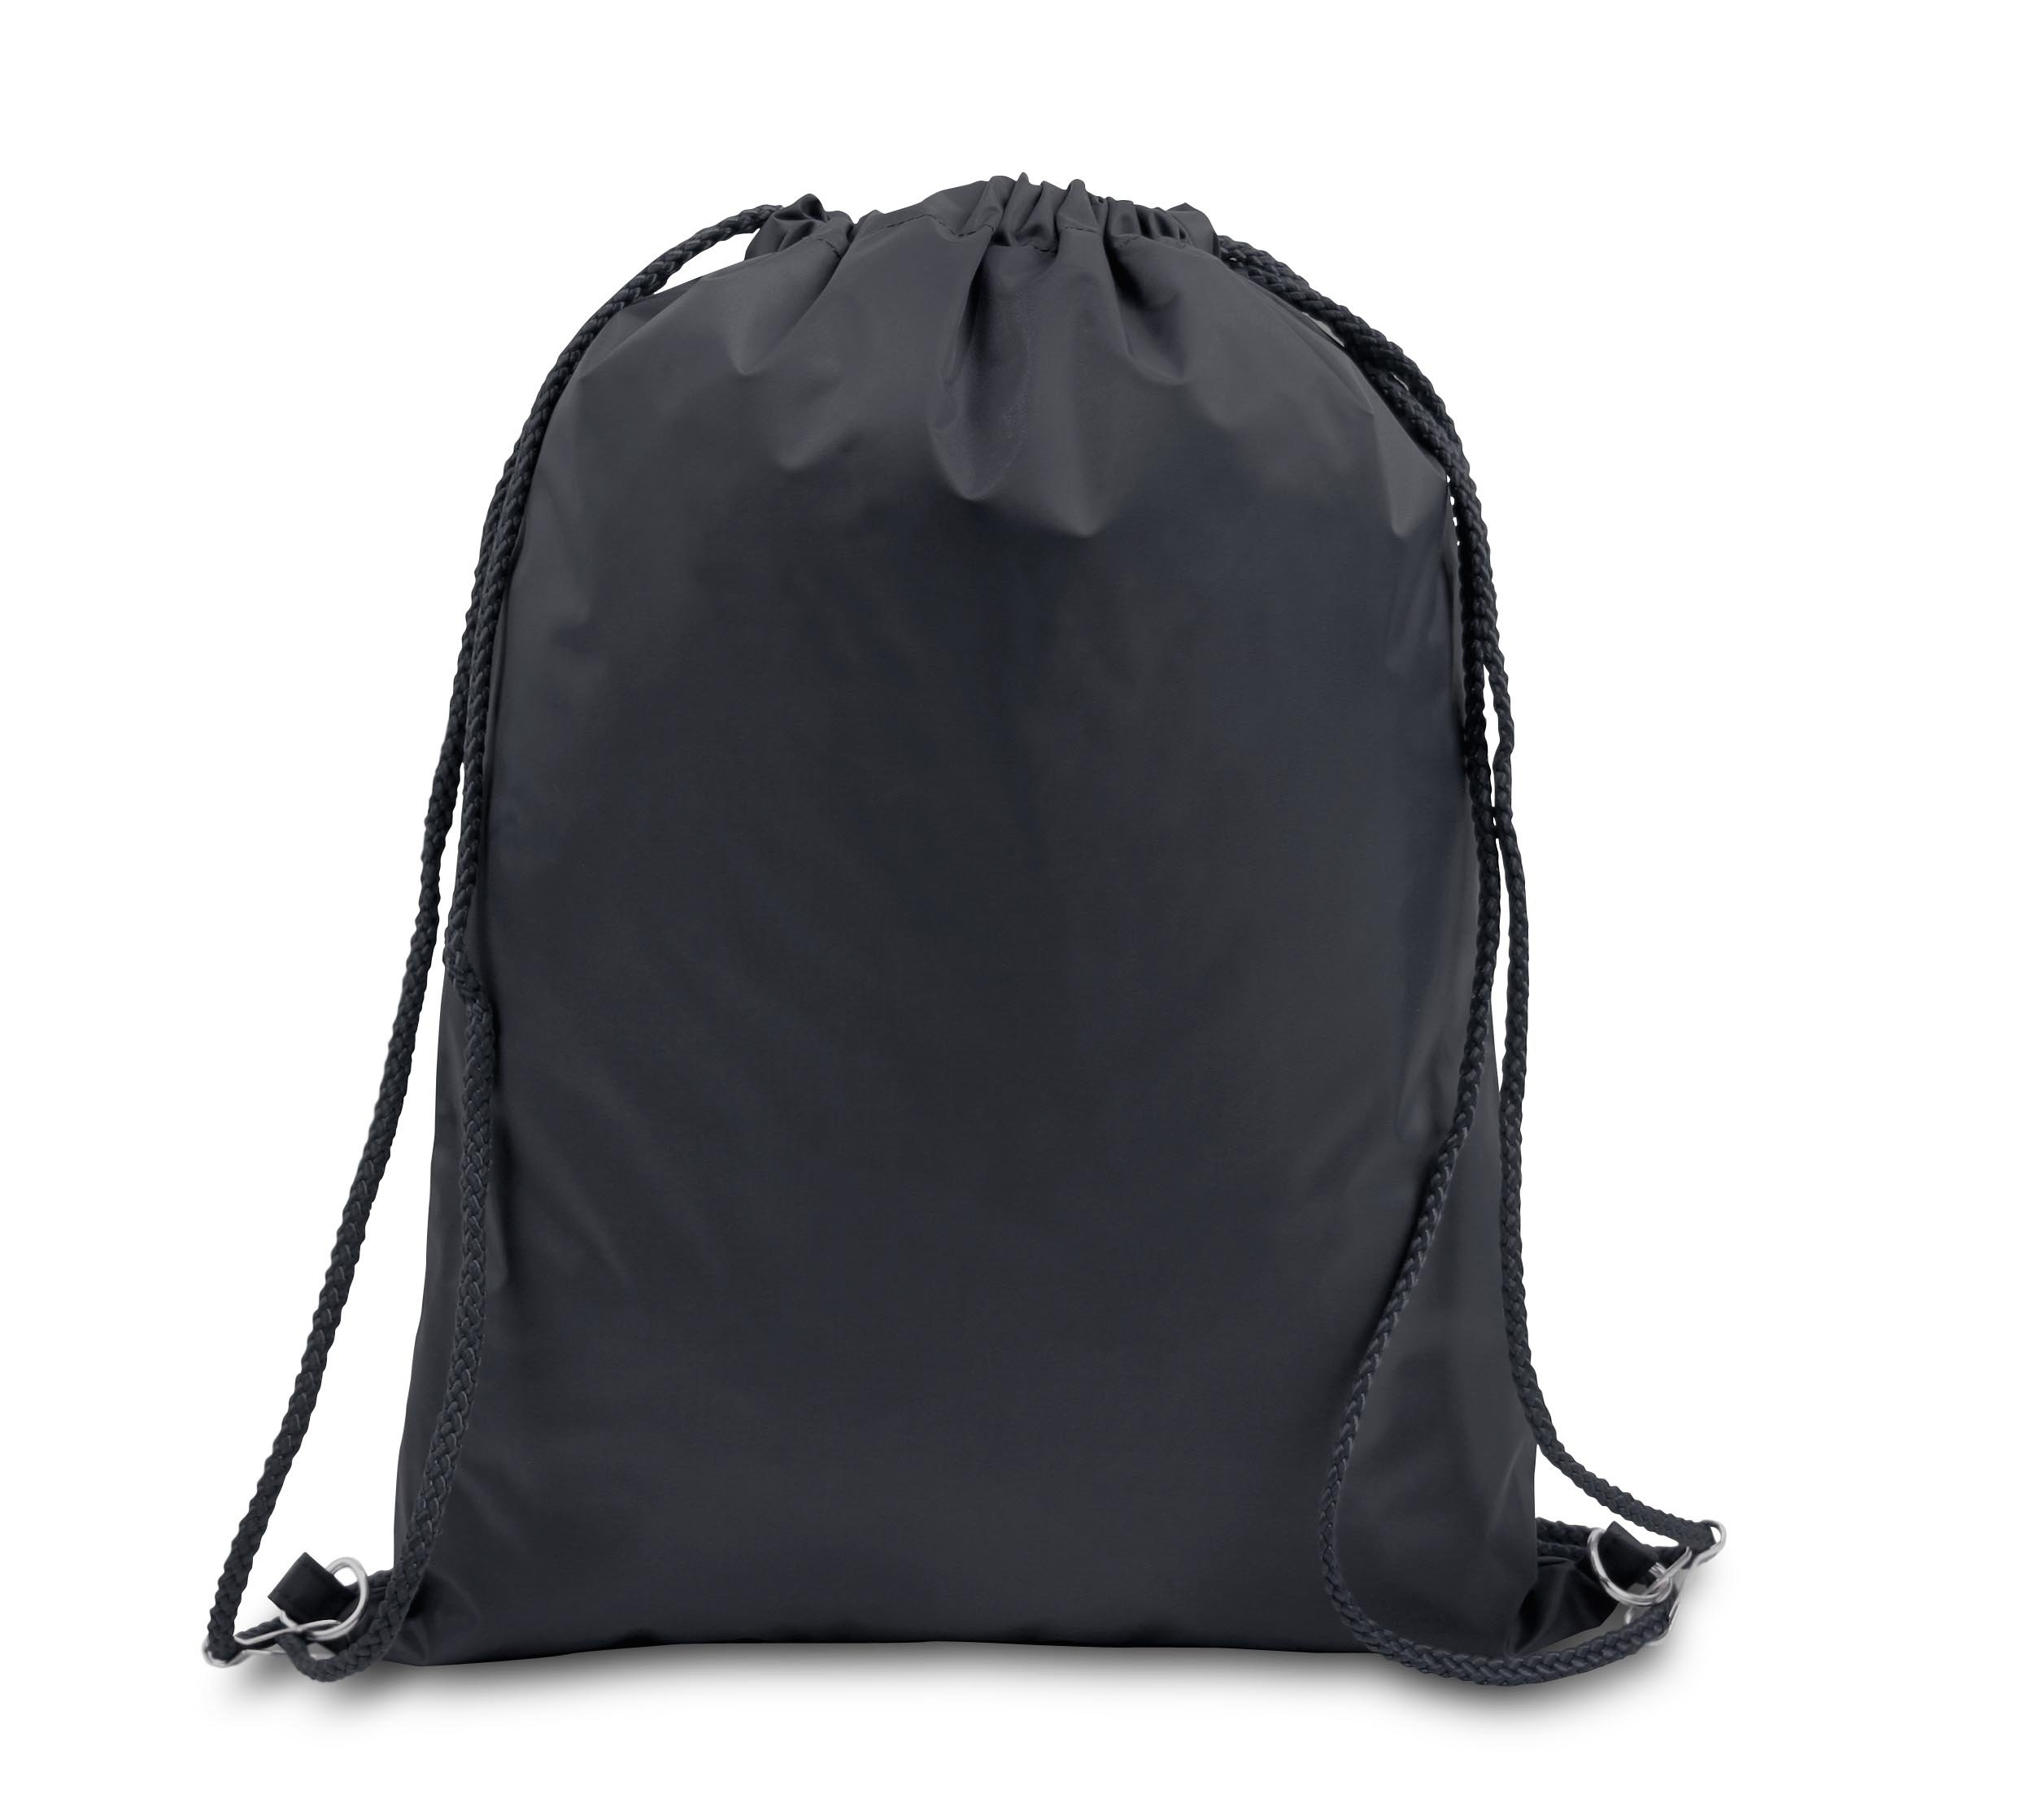 DRAWSTRING BACKPACK, Black, Case of 48 by DollarItemDirect